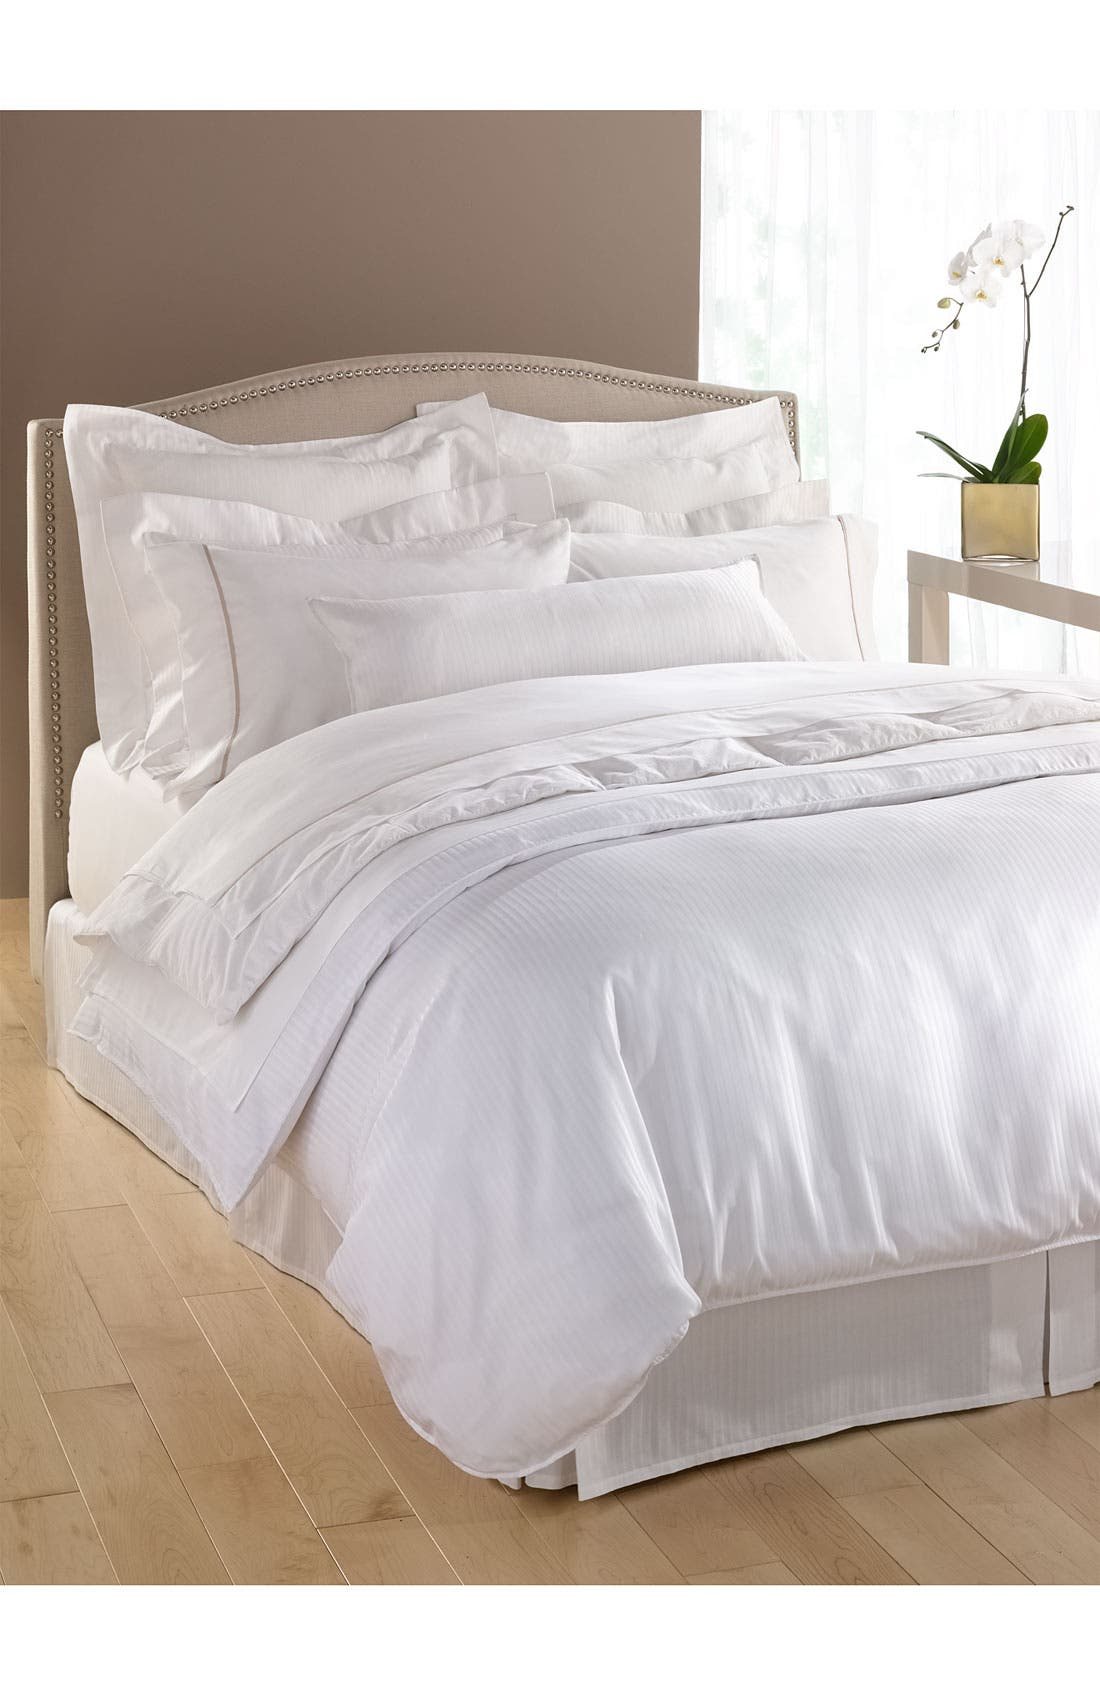 Main Image - Westin Heavenly Bed® Complete Bedding Ensemble